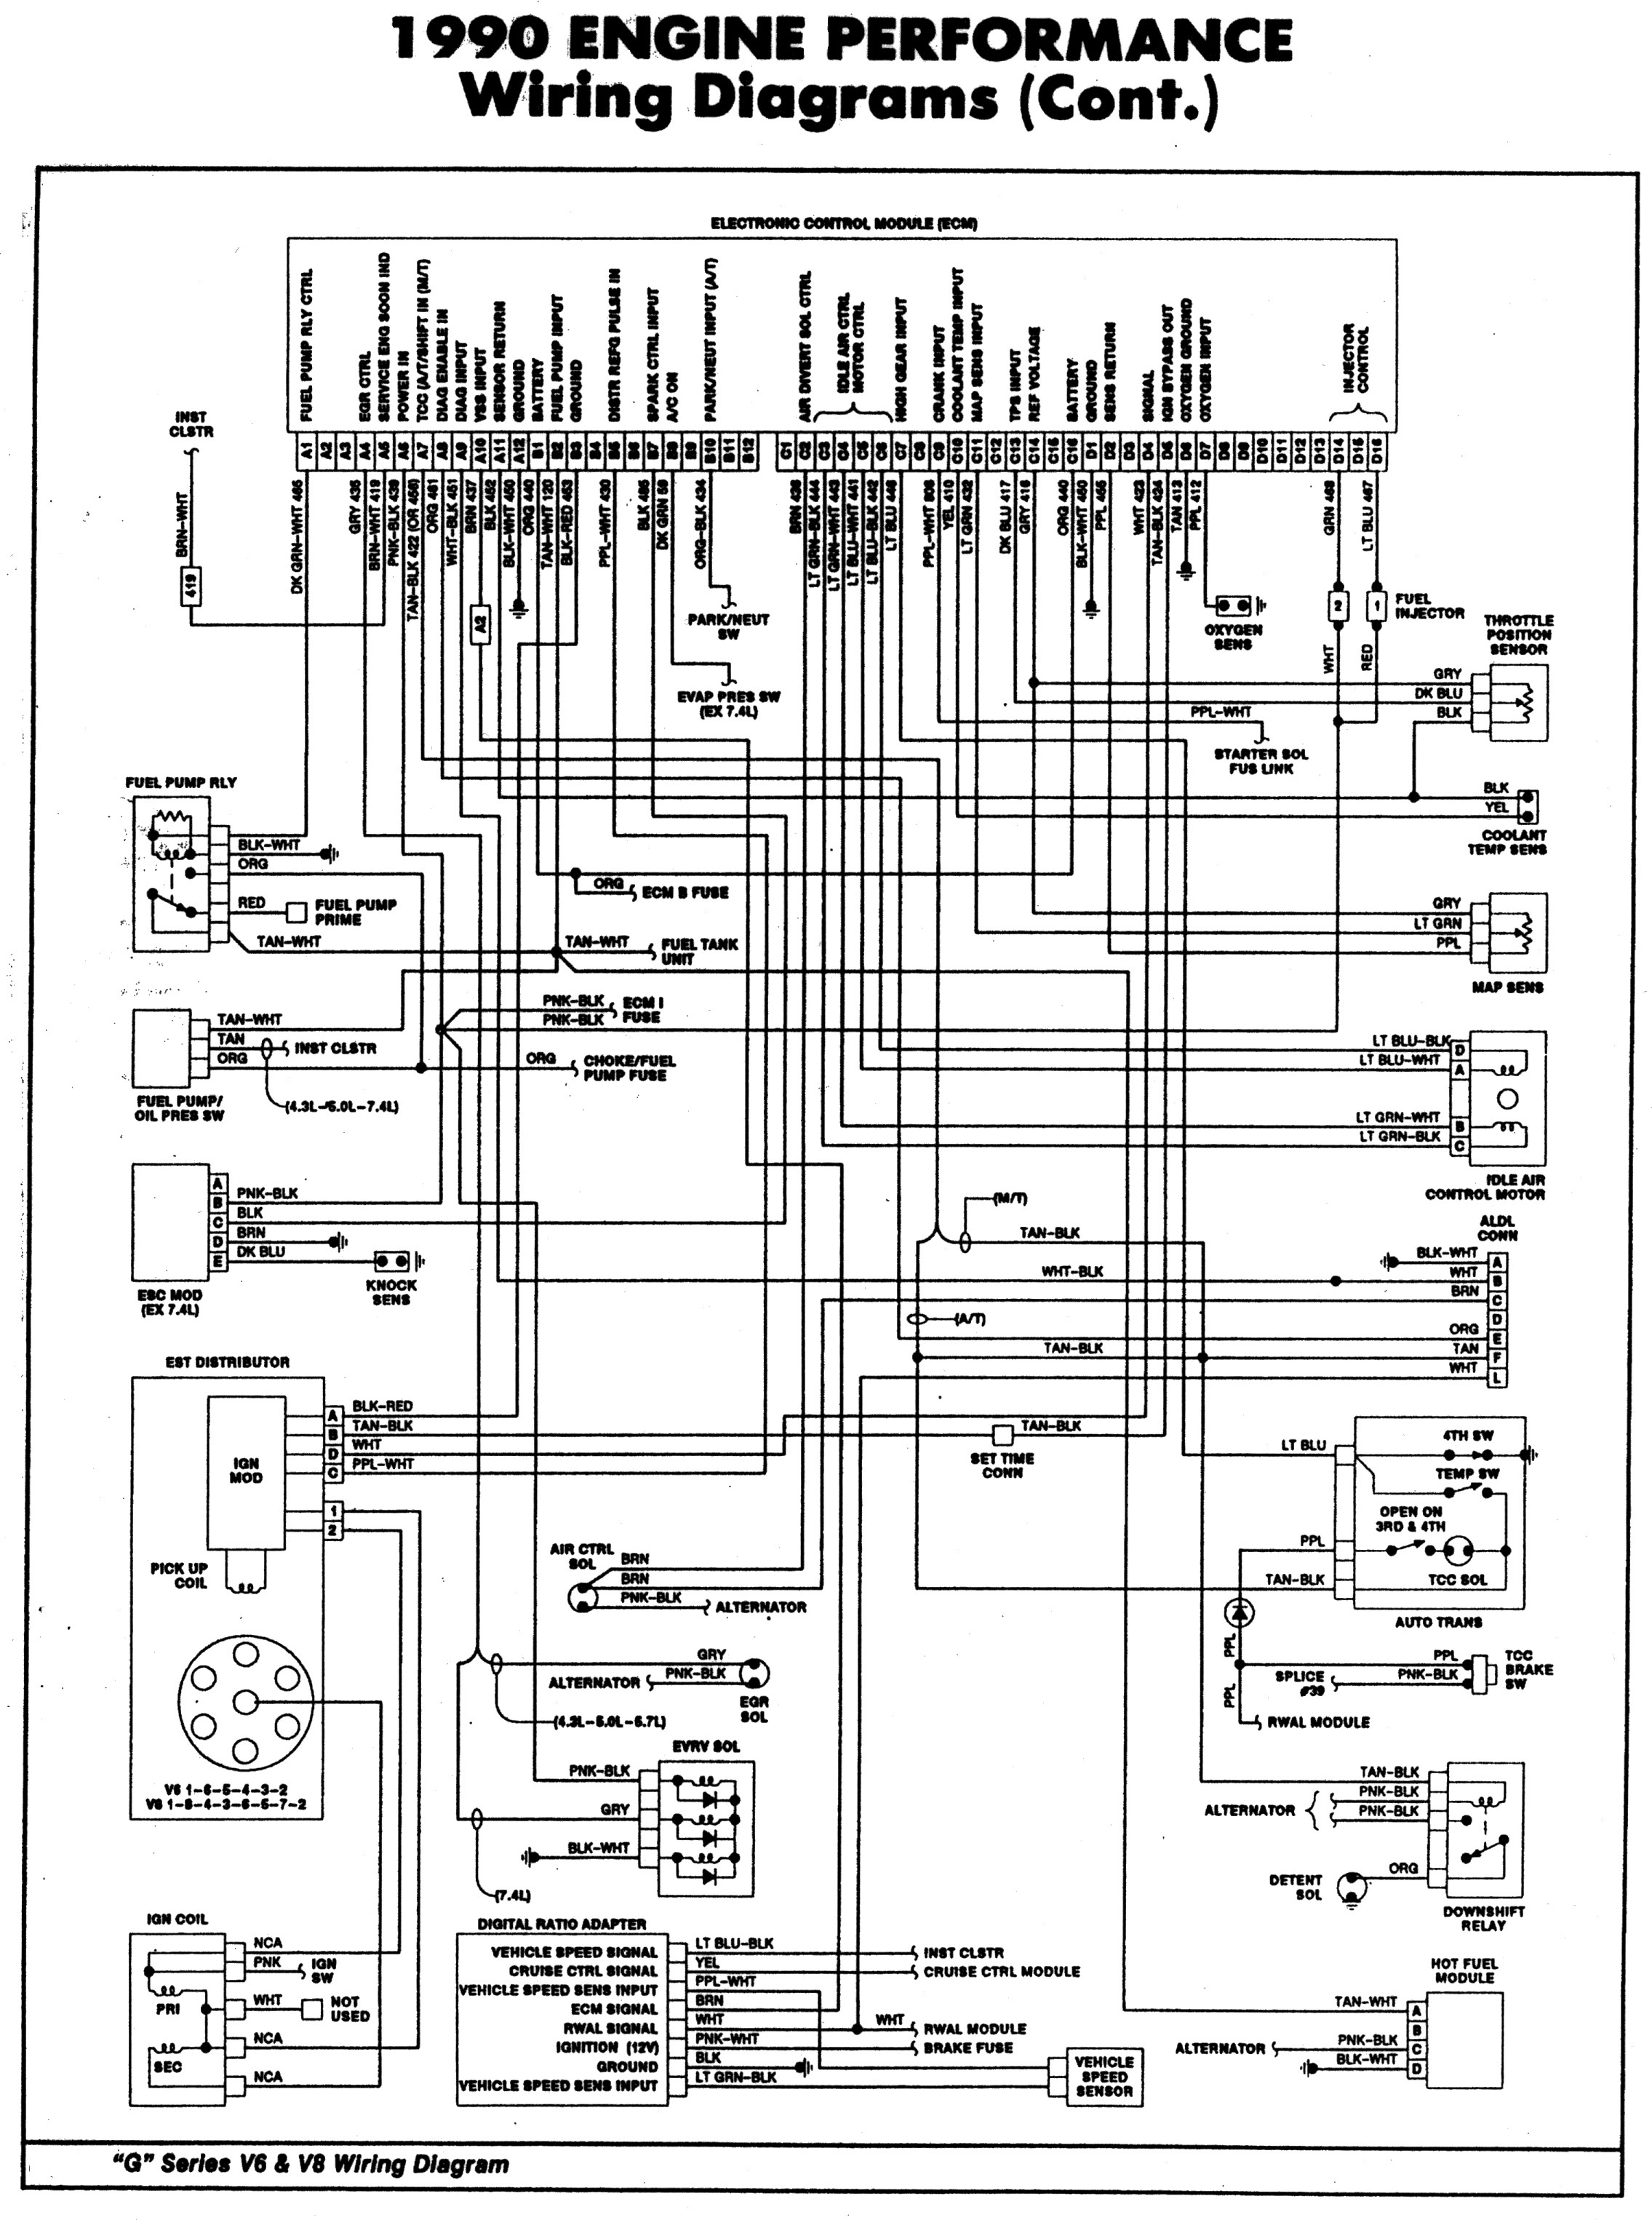 96 Chevy Corsica Engine Diagram | Wiring Diagram on chevy tbi carburetor, chevy tbi codes, chevy tbi air cleaner, chevy tbi distributor, chevy tbi forum, chevy tbi coil, tbi harness diagram, chevy tbi starter, chevy tbi engine, chevy tbi power, chevy tbi troubleshooting, 1989 chevy 1500 engine diagram, chevy tbi unit, tbi ignition coil circuit diagram, chevy 350 diagram, chevy tbi parts, chevy tbi system, chevy tbi fuel pump, chevy tbi schematic, 350 tbi coolant diagram,